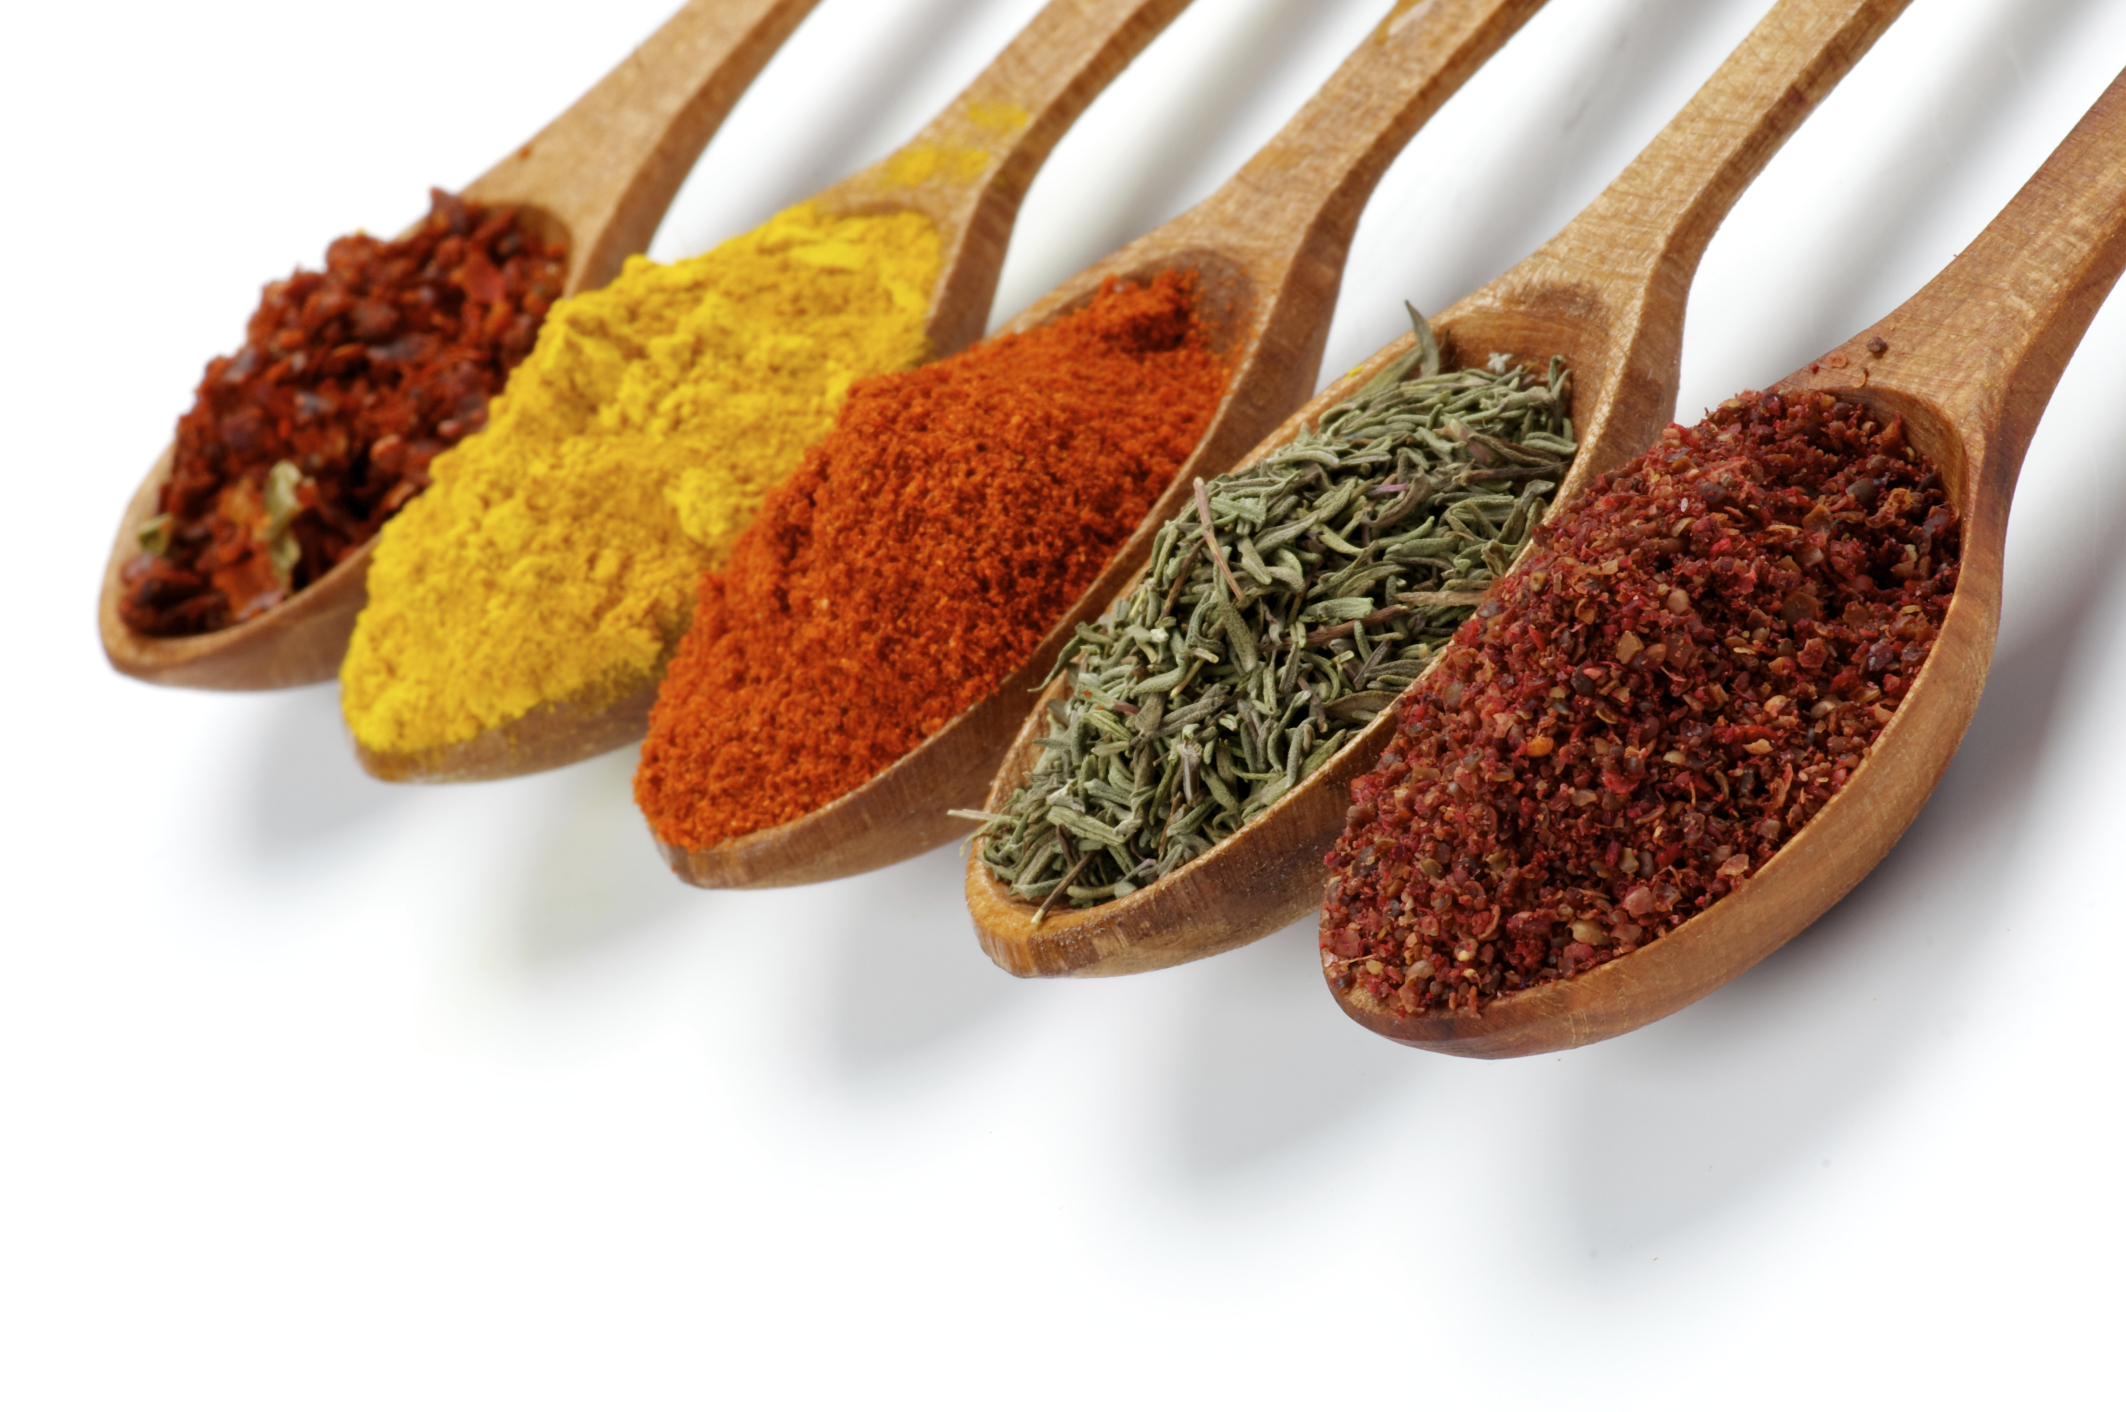 What Is The Hot Spice In Indian Food